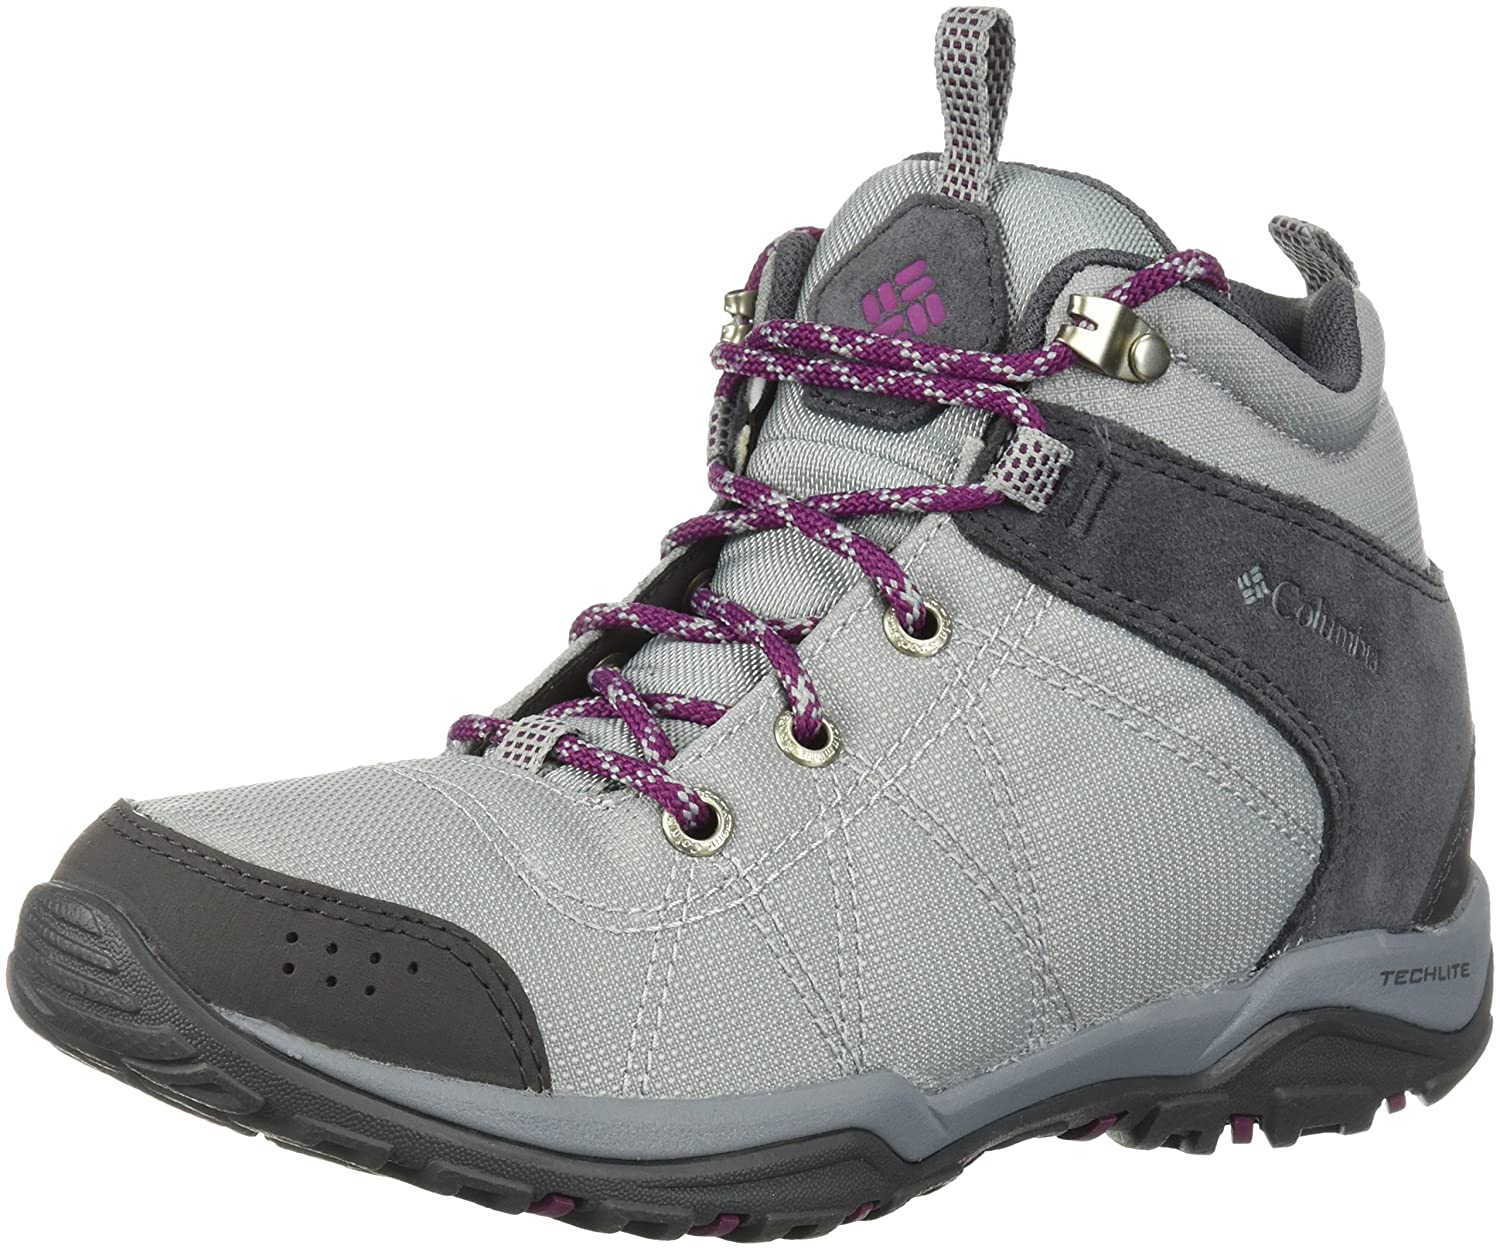 Columbia Women's Fire Venture Mid Textile Hiking Boot B073RN2J6Y 7.5 B(M) US|Earl Grey, Dark Raspberry